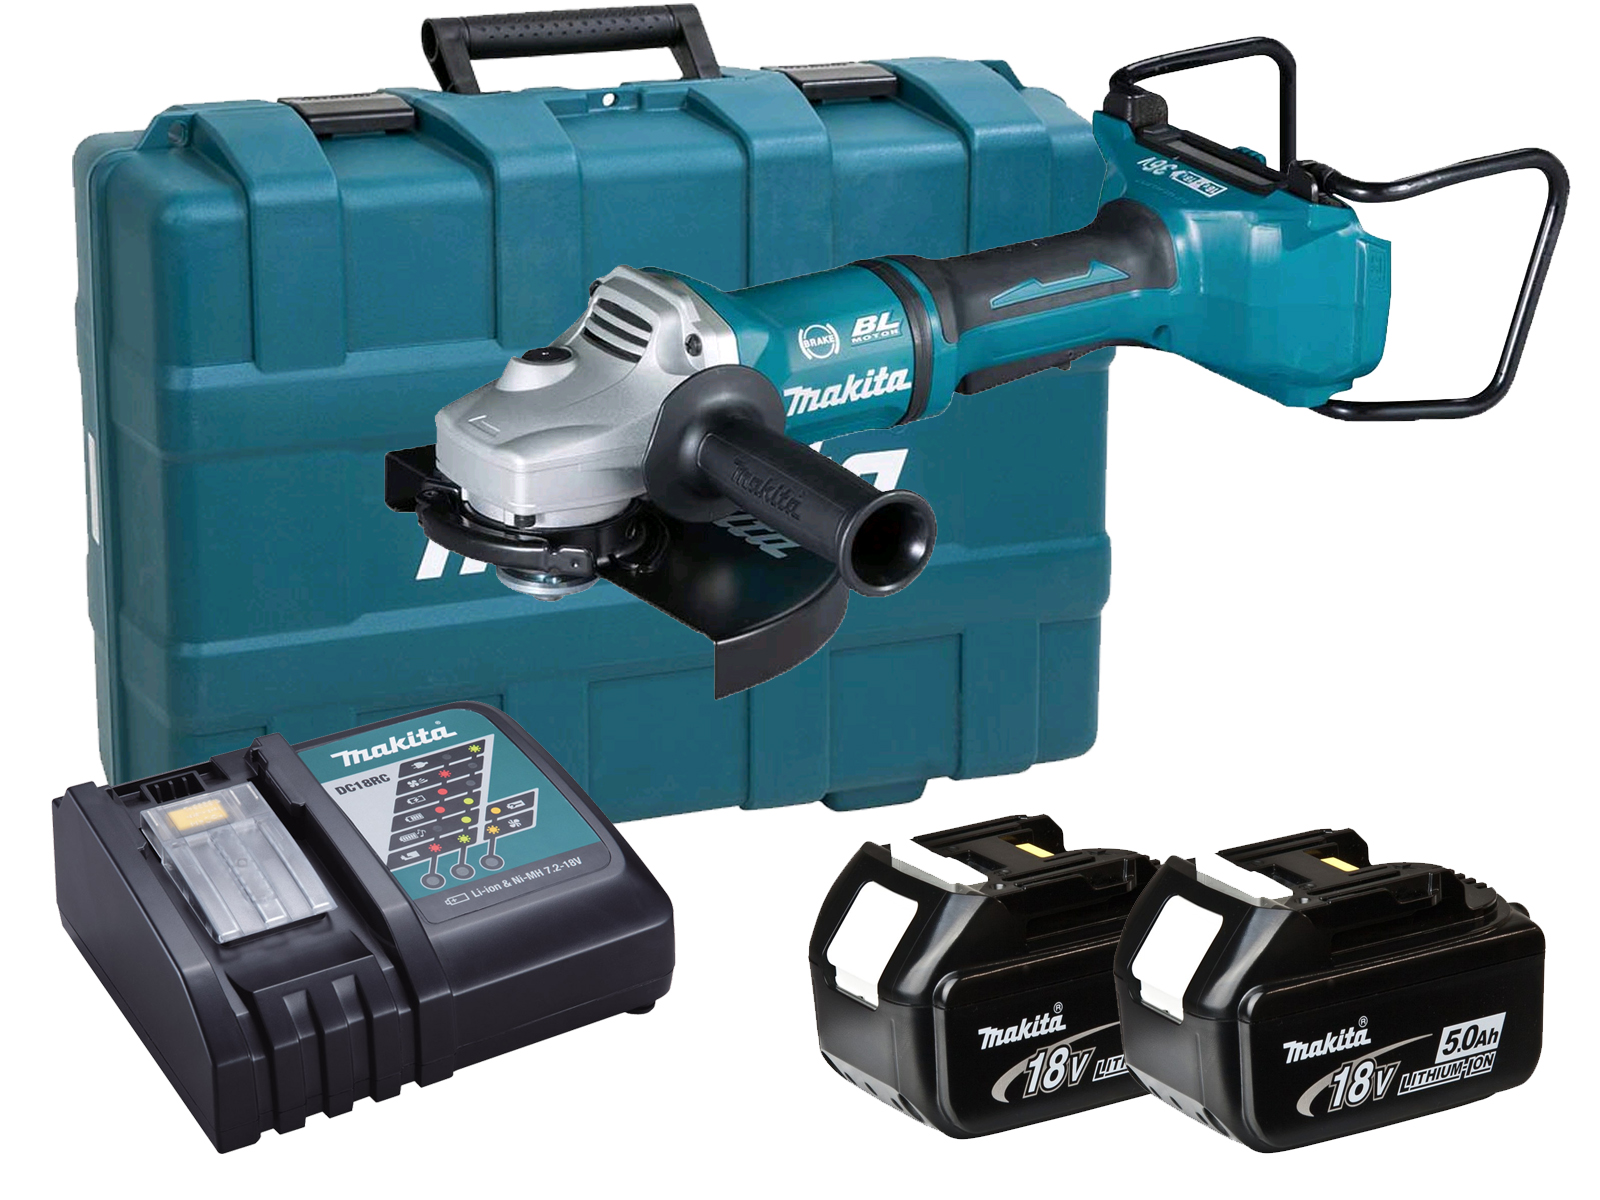 Makita DGA900 36V (Twin 18V) Brushless 230mm Angle Grinder LXT - 5.0Ah Pack